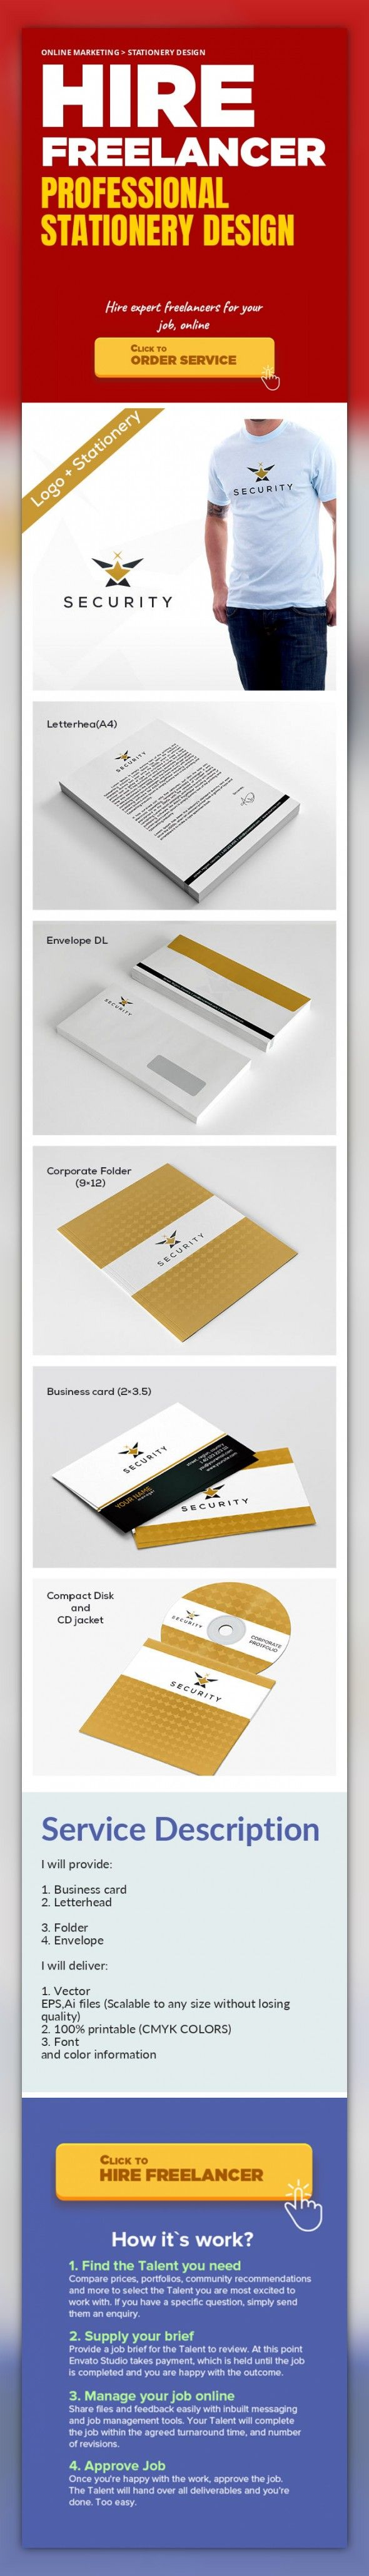 Professional stationery design online marketing stationery design i professional stationery design online marketing stationery design i will provide 1 business card 2 letterhead 3 folder 4 envelope i will deliver 1 reheart Image collections